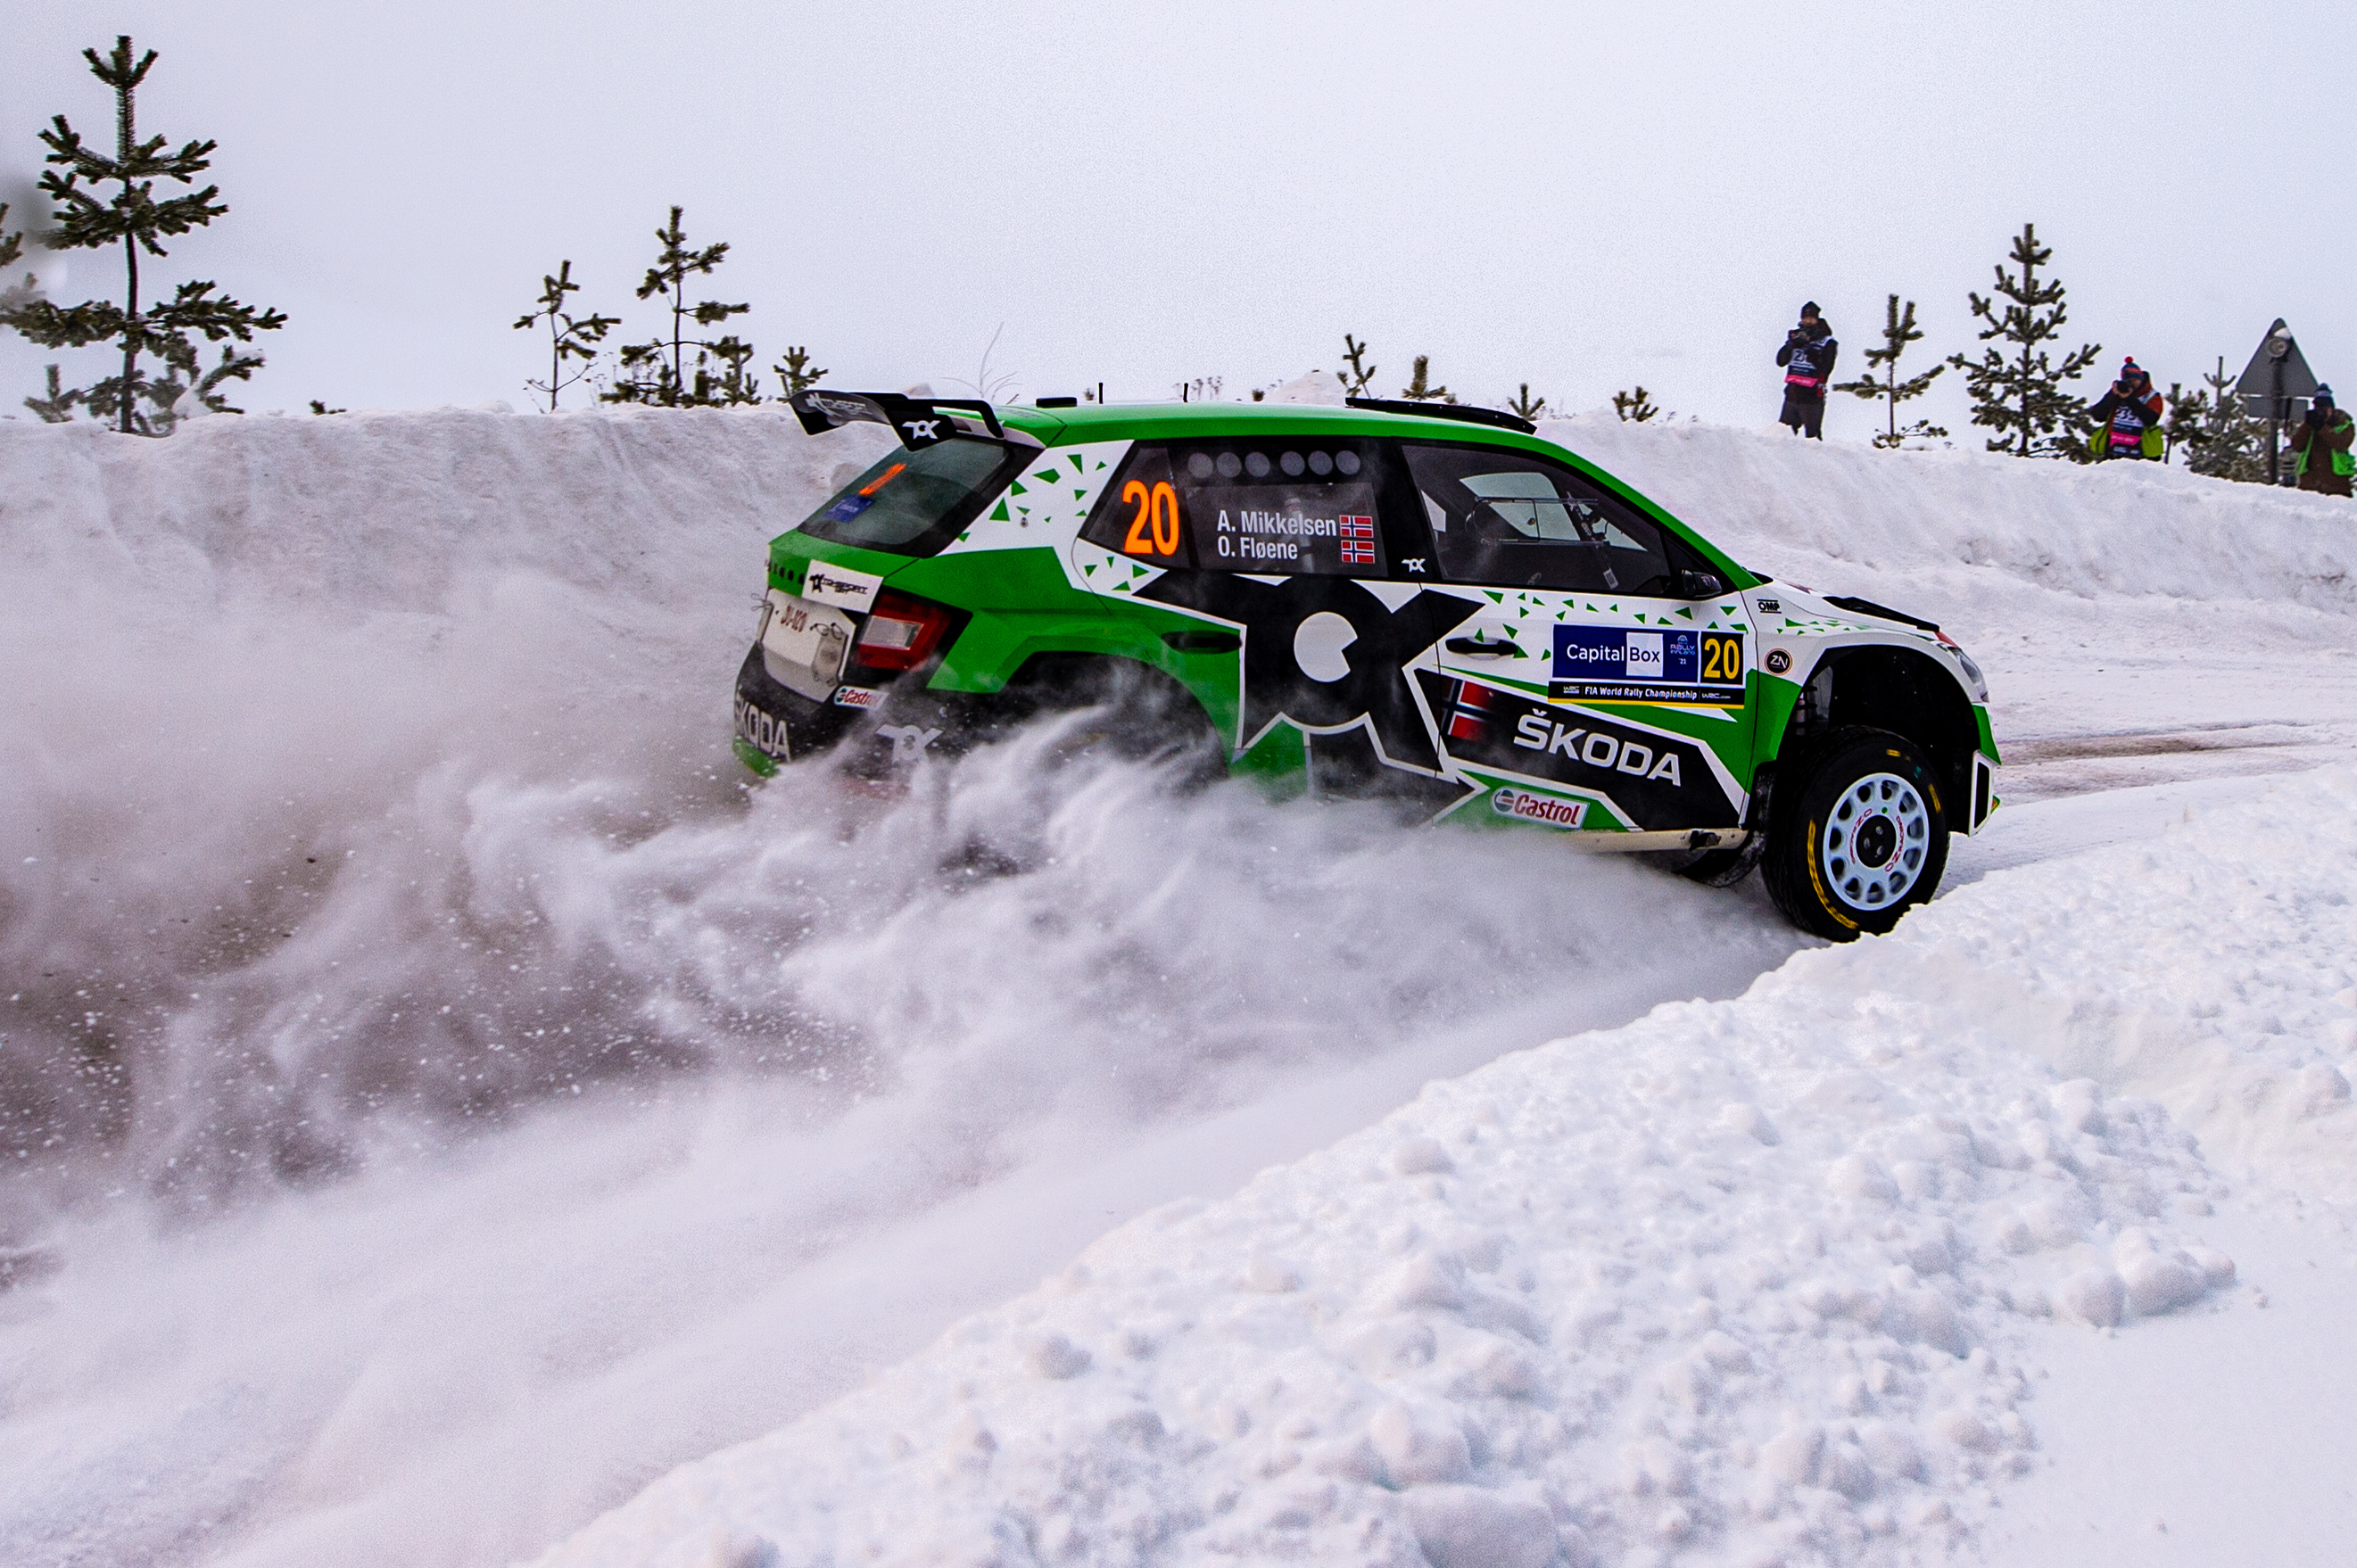 Arctic Rally Finland: SKODA Motorsport supported Andreas Mikkelsen finishes Friday leg third in WRC2 - Image 4